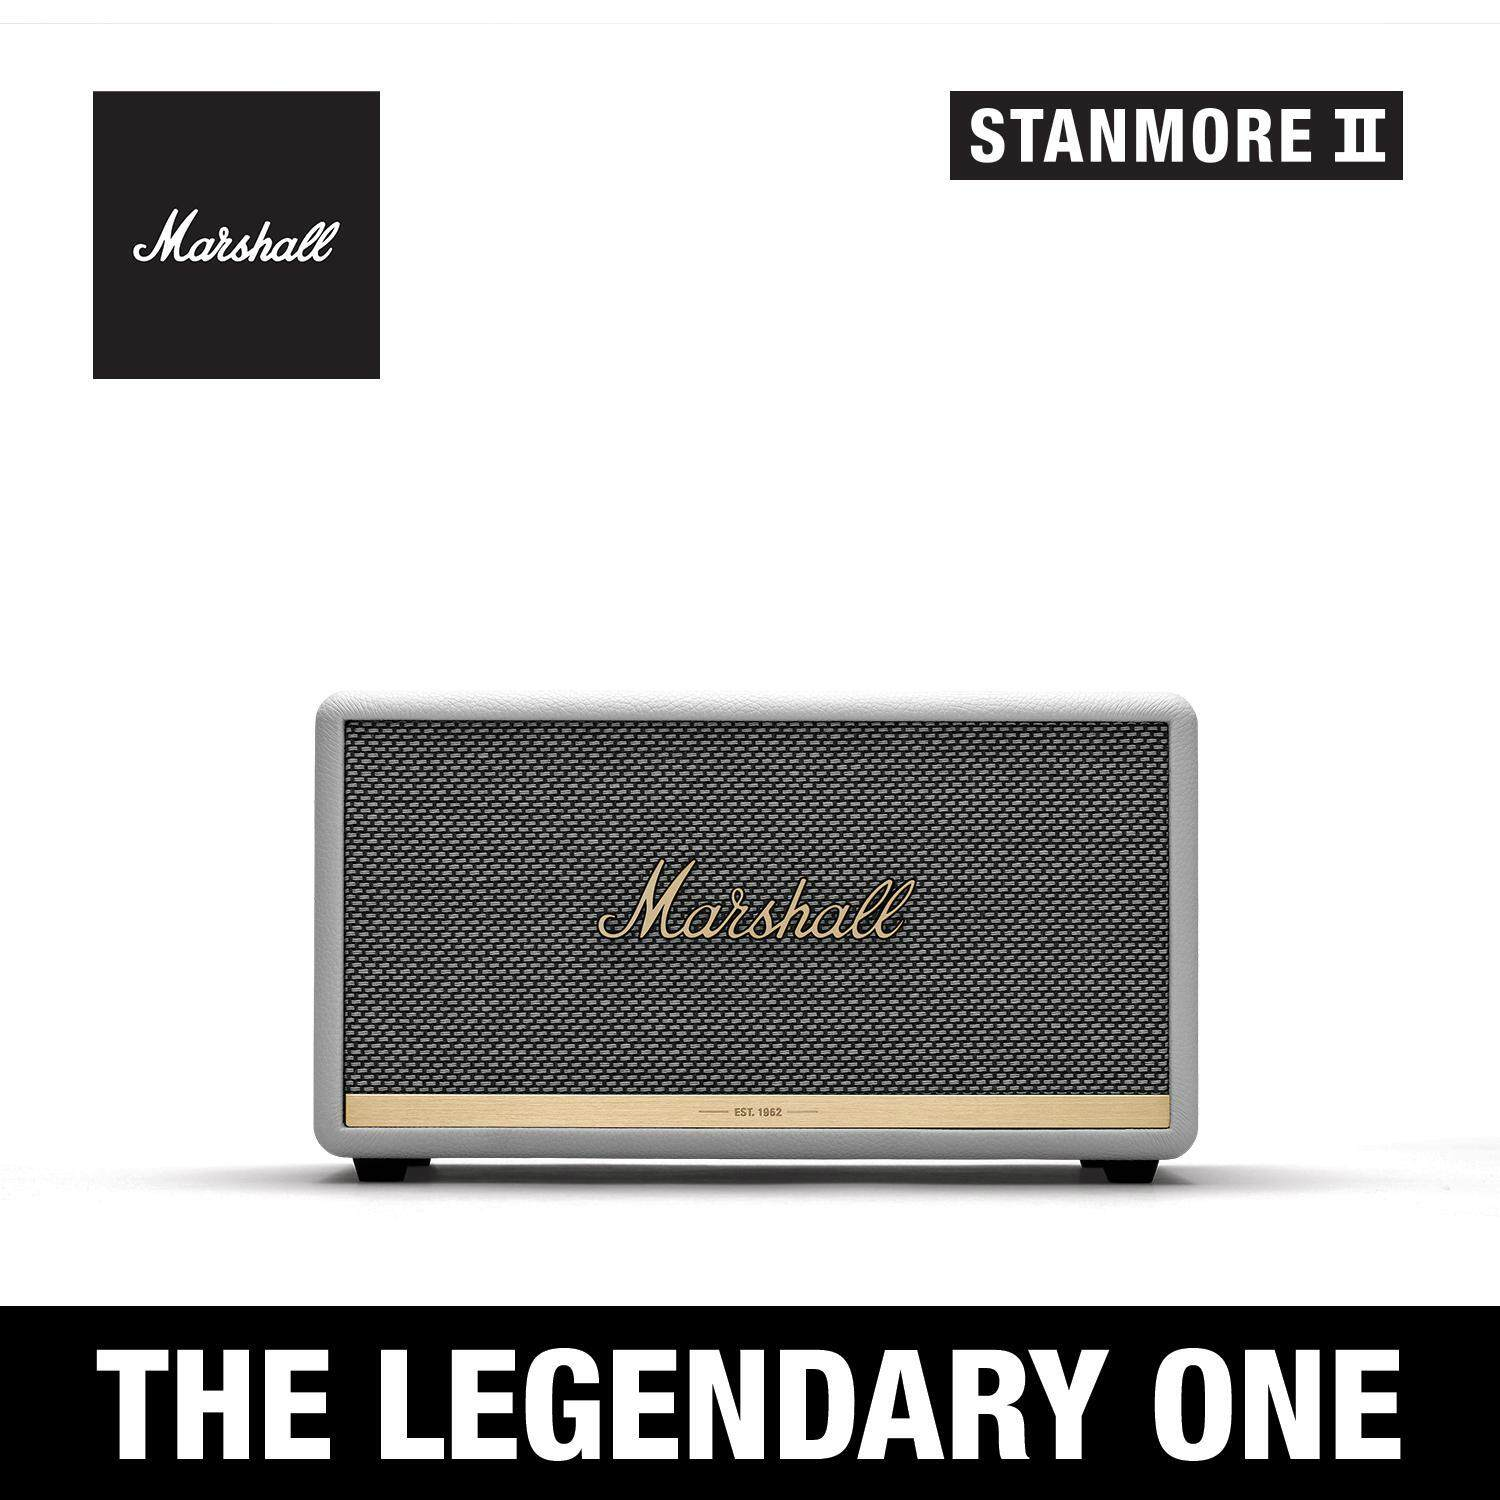 สอนใช้งาน  ลำโพงบลูทูธ Marshall Stanmore II White - Marshall Stanmore II bluetooth speaker White